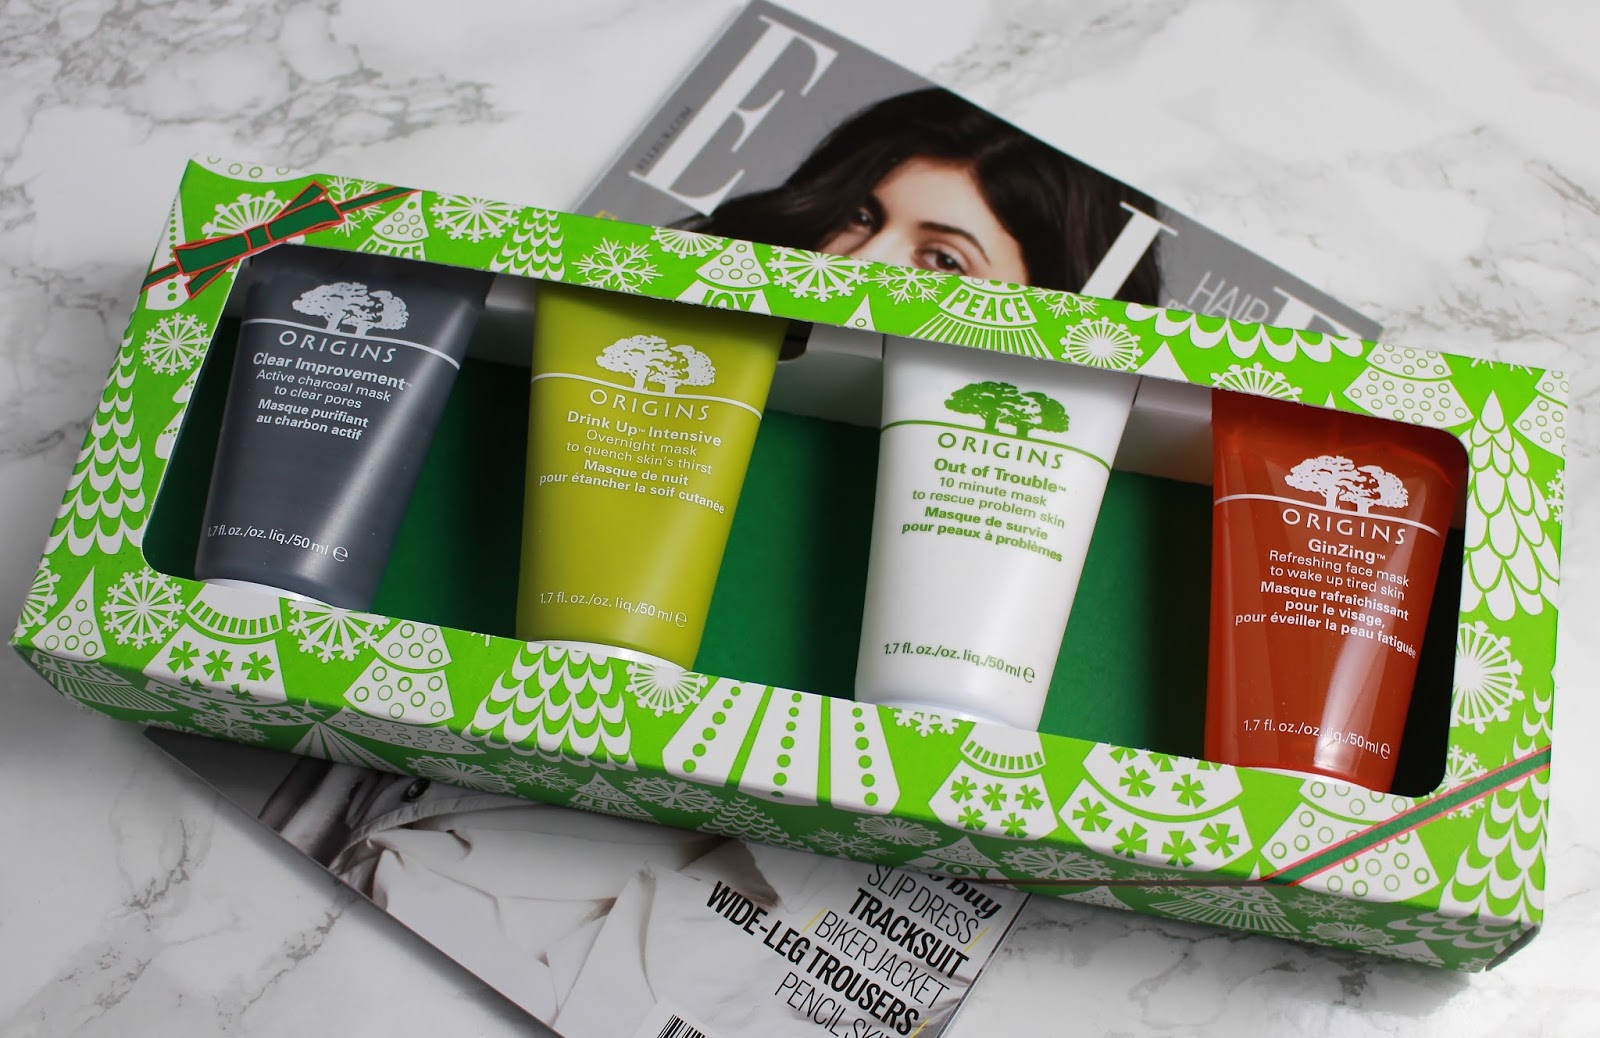 Origins Clear Improvement, Origins Face Mask Review, Origins Drink Up-Intensive Mask, Origins Out of Trouble Mask, Origins Ginzing Mask